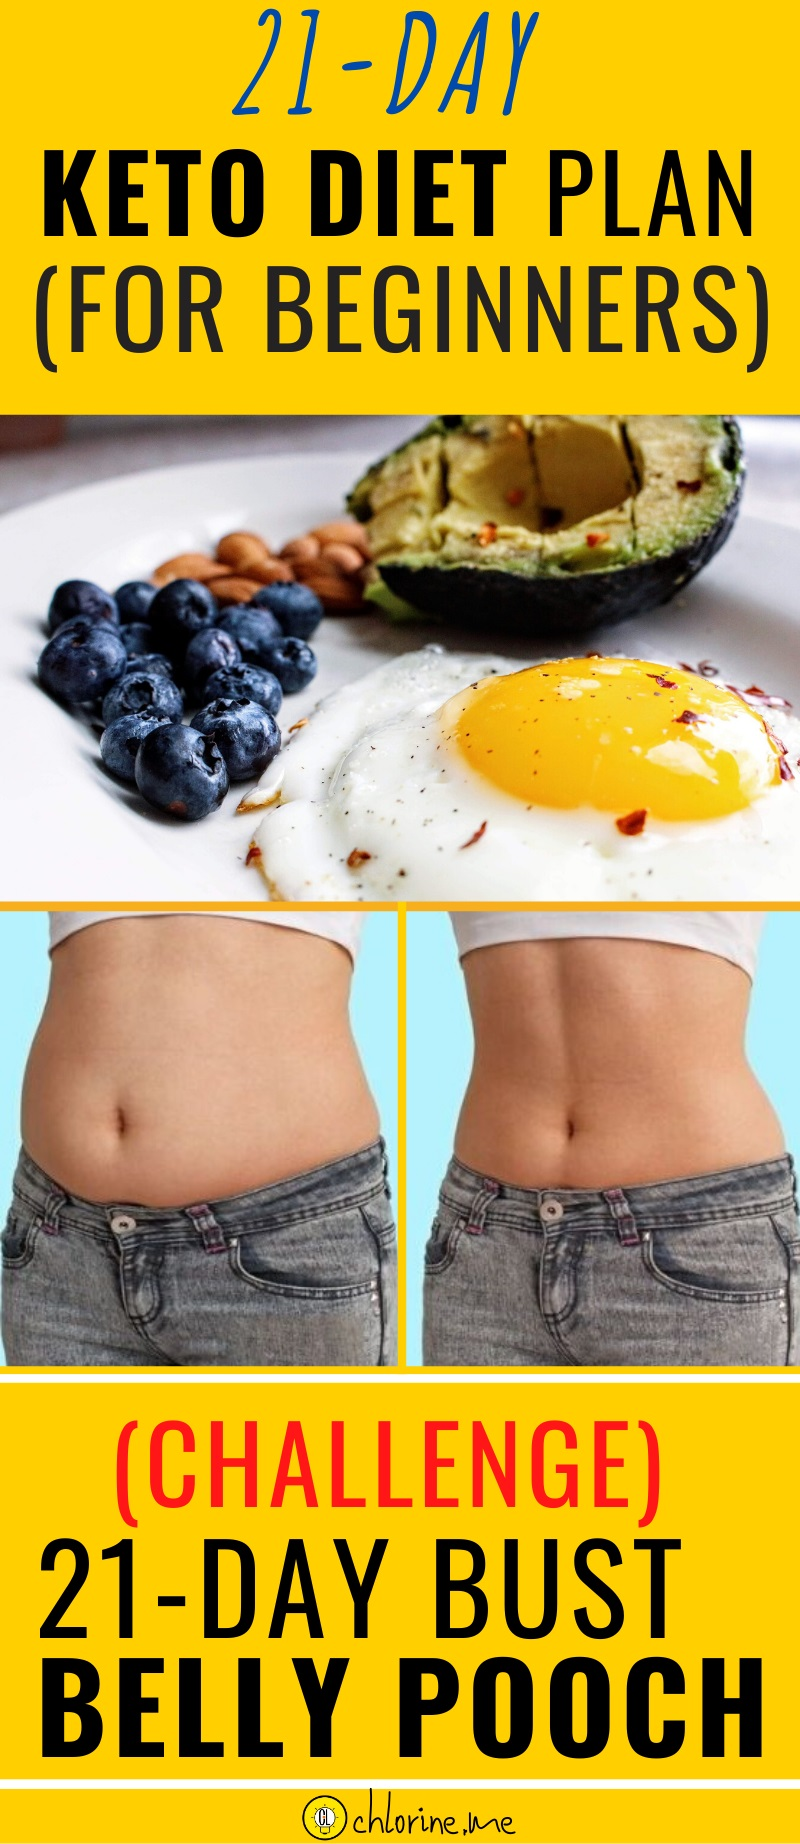 keto diet plan for belly pooch